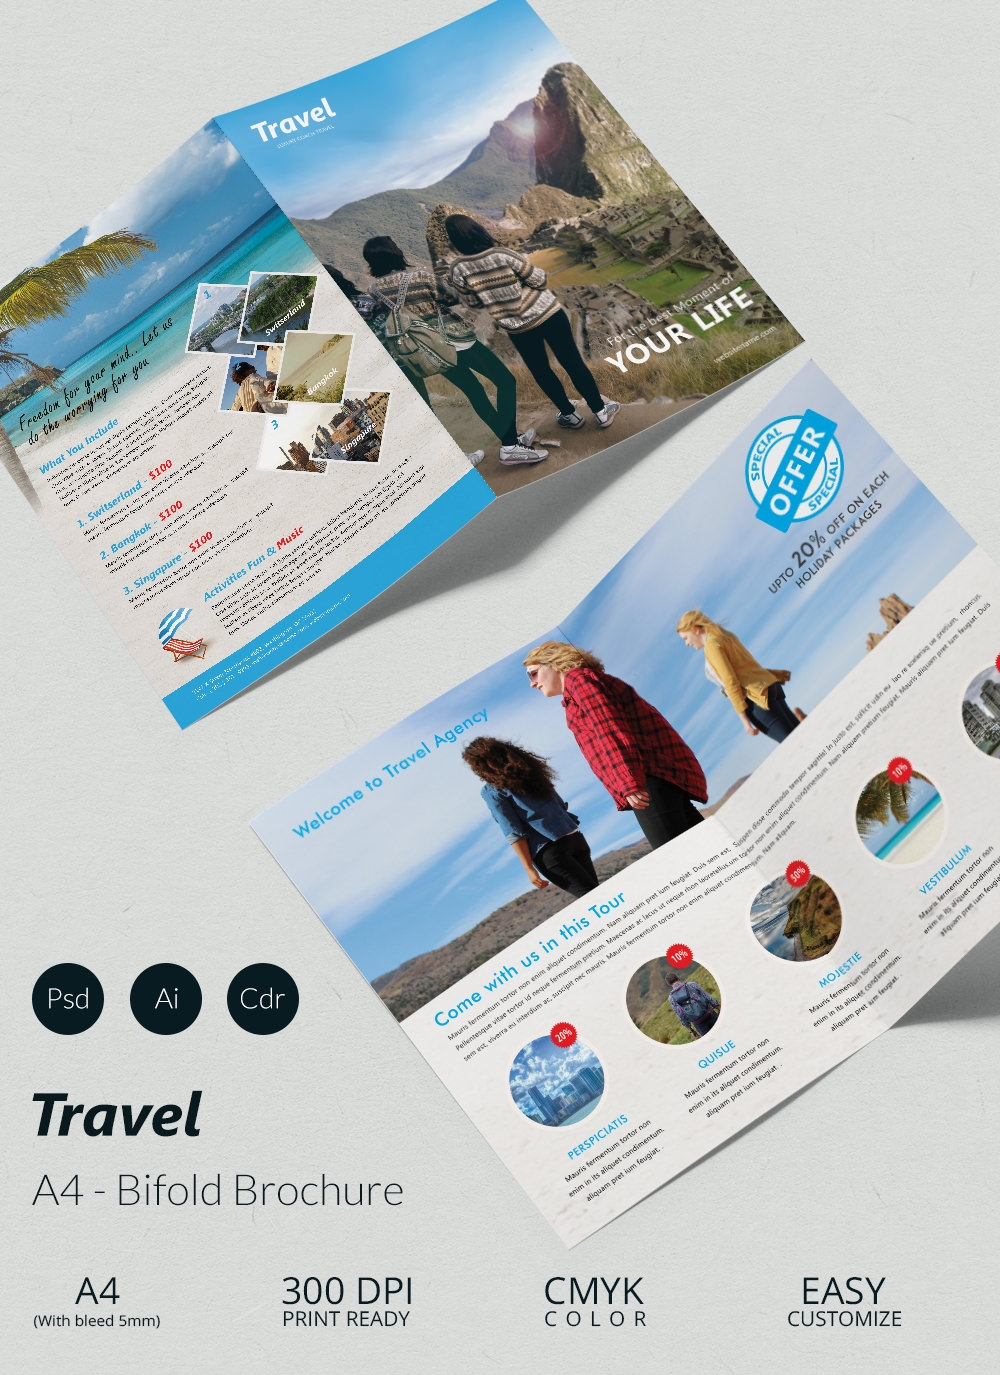 Travel Agency Brochure Template By Casey Zumwalt  Vts